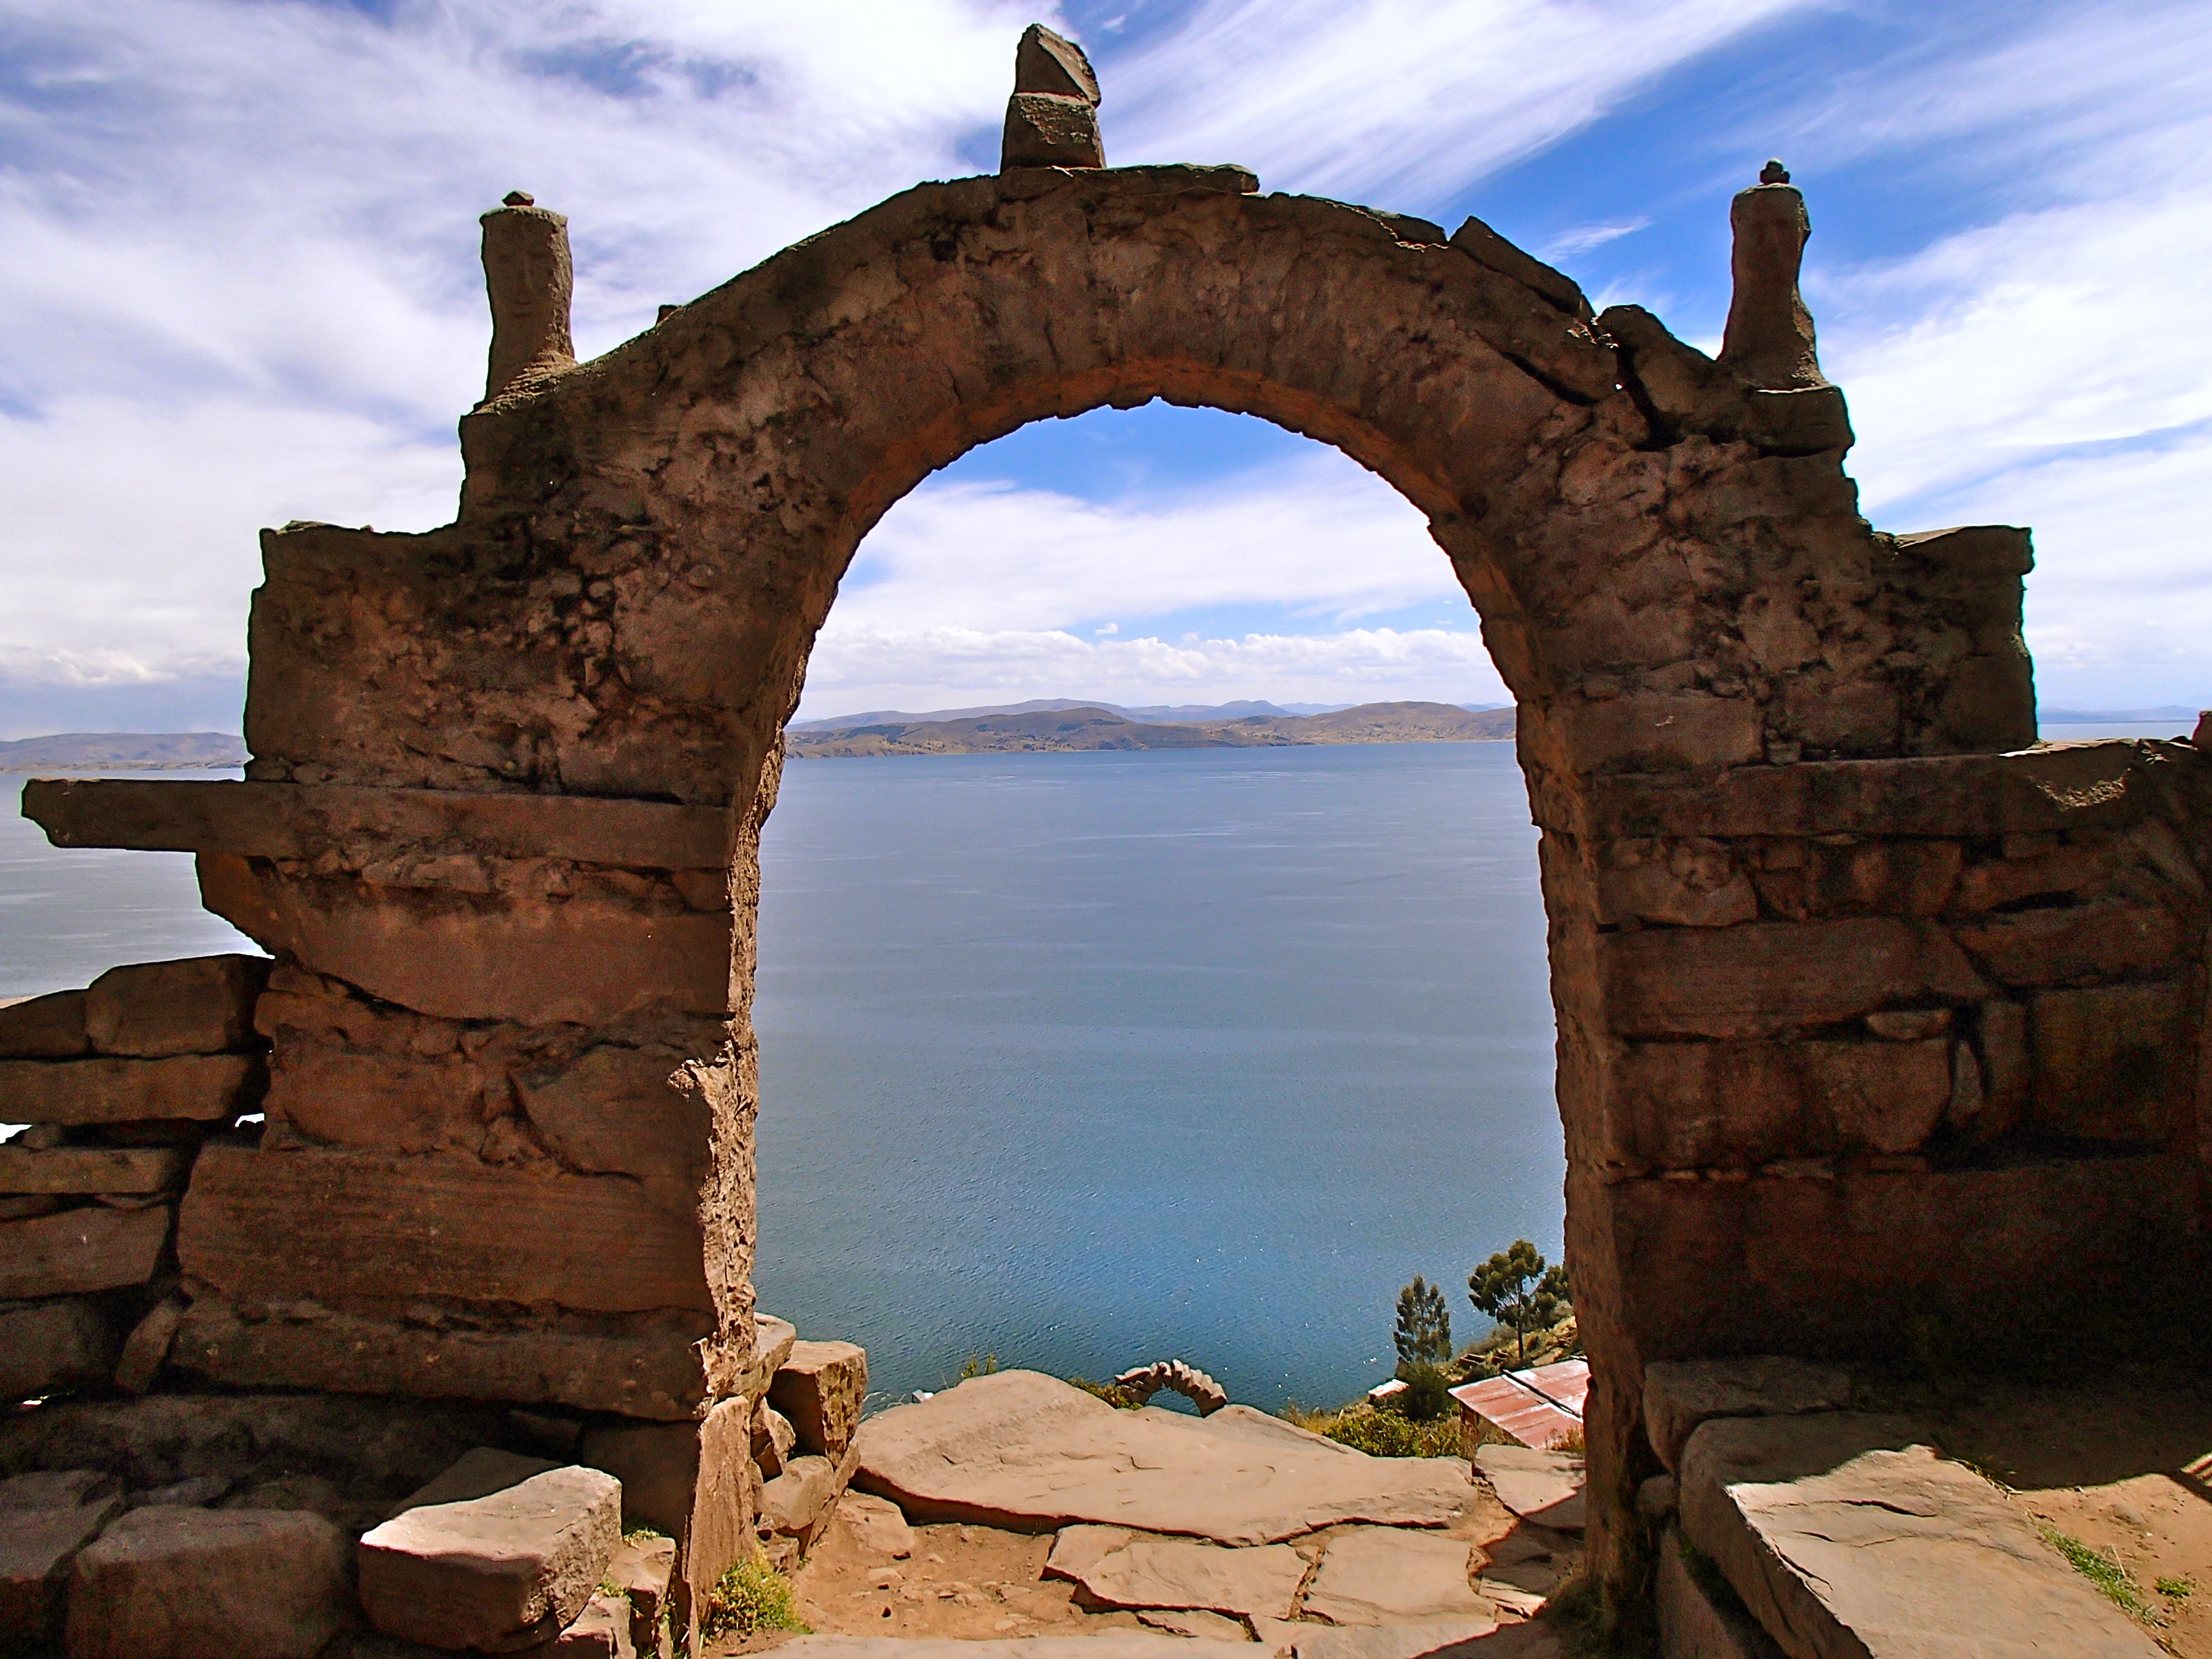 isla taquile in lake titicaca peru things to do in peru